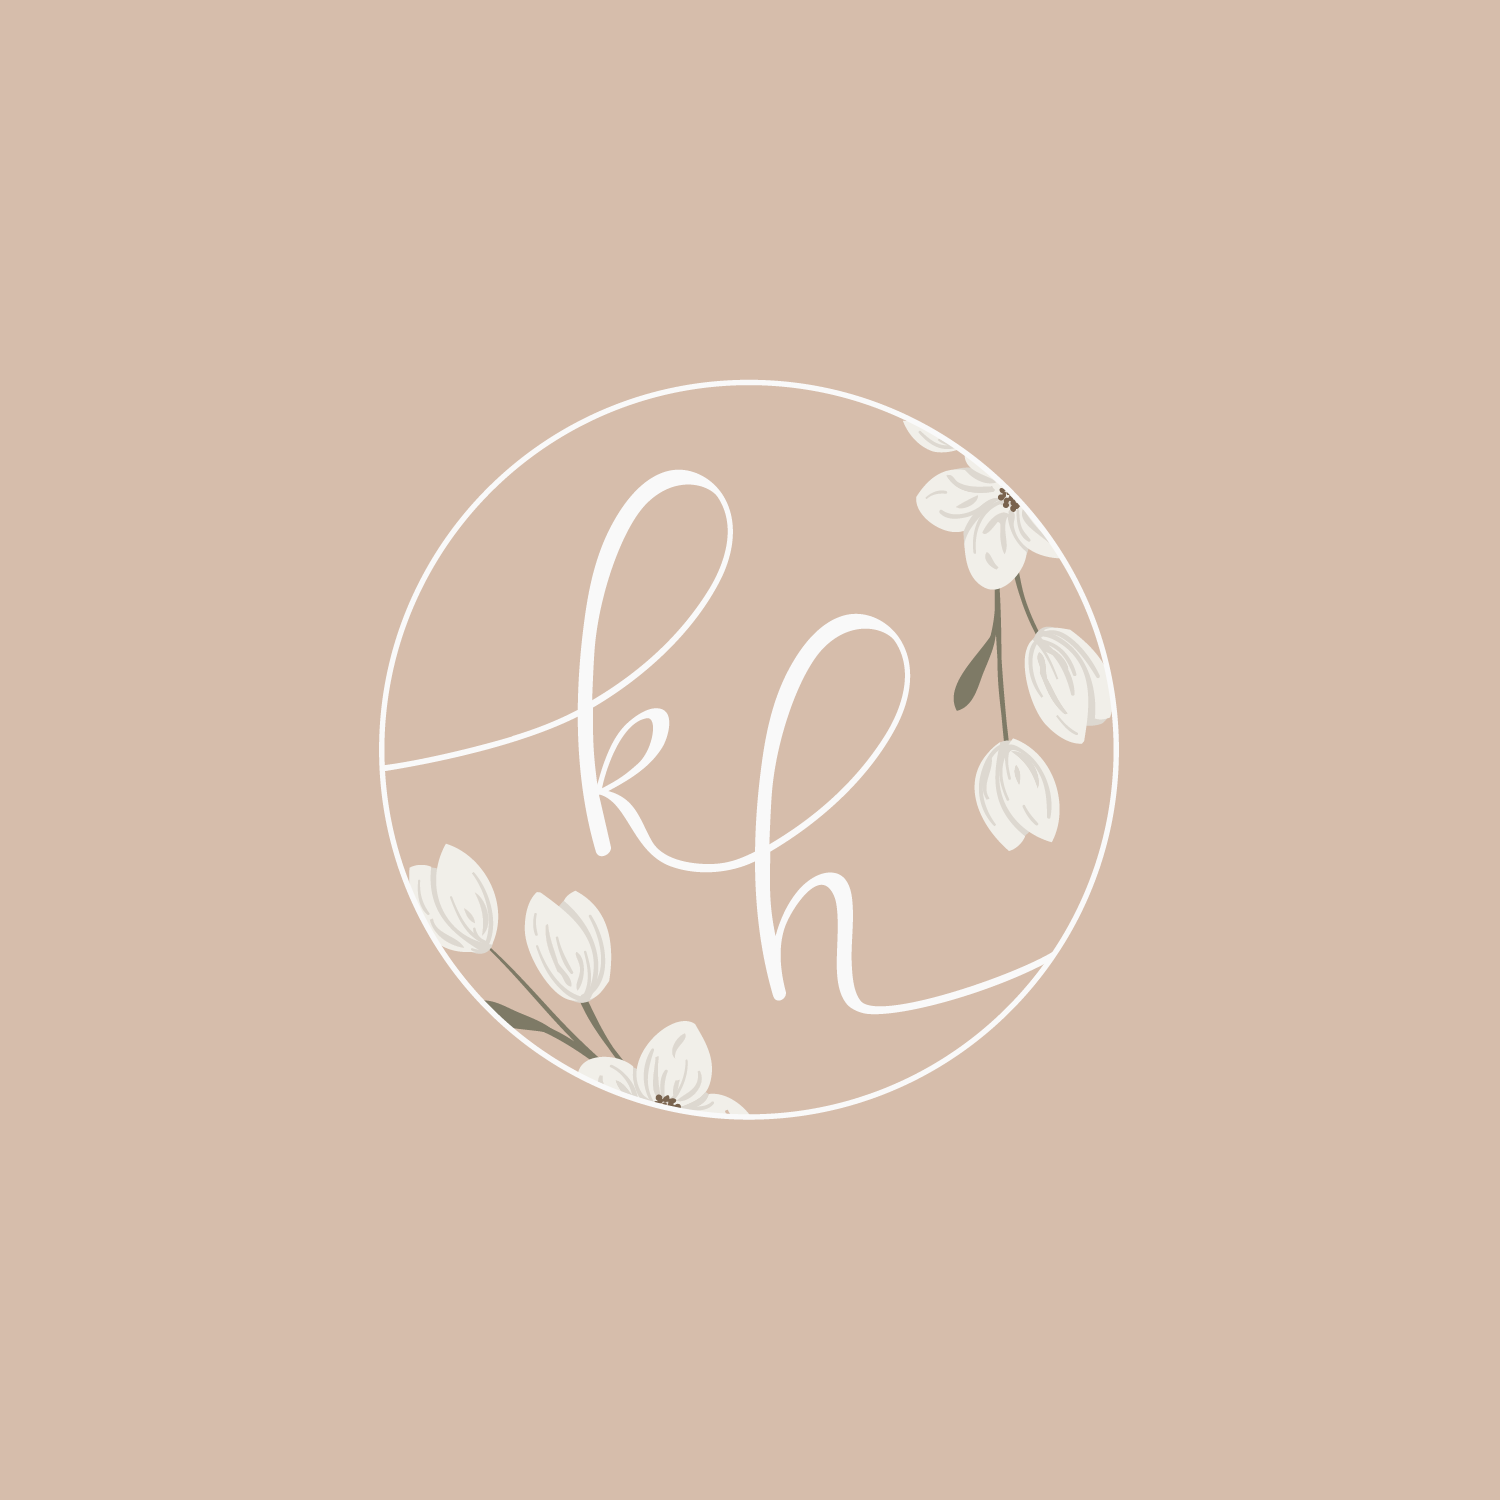 K Hice Photography Logo & Branding by Bea & Bloom Creative Design Studio